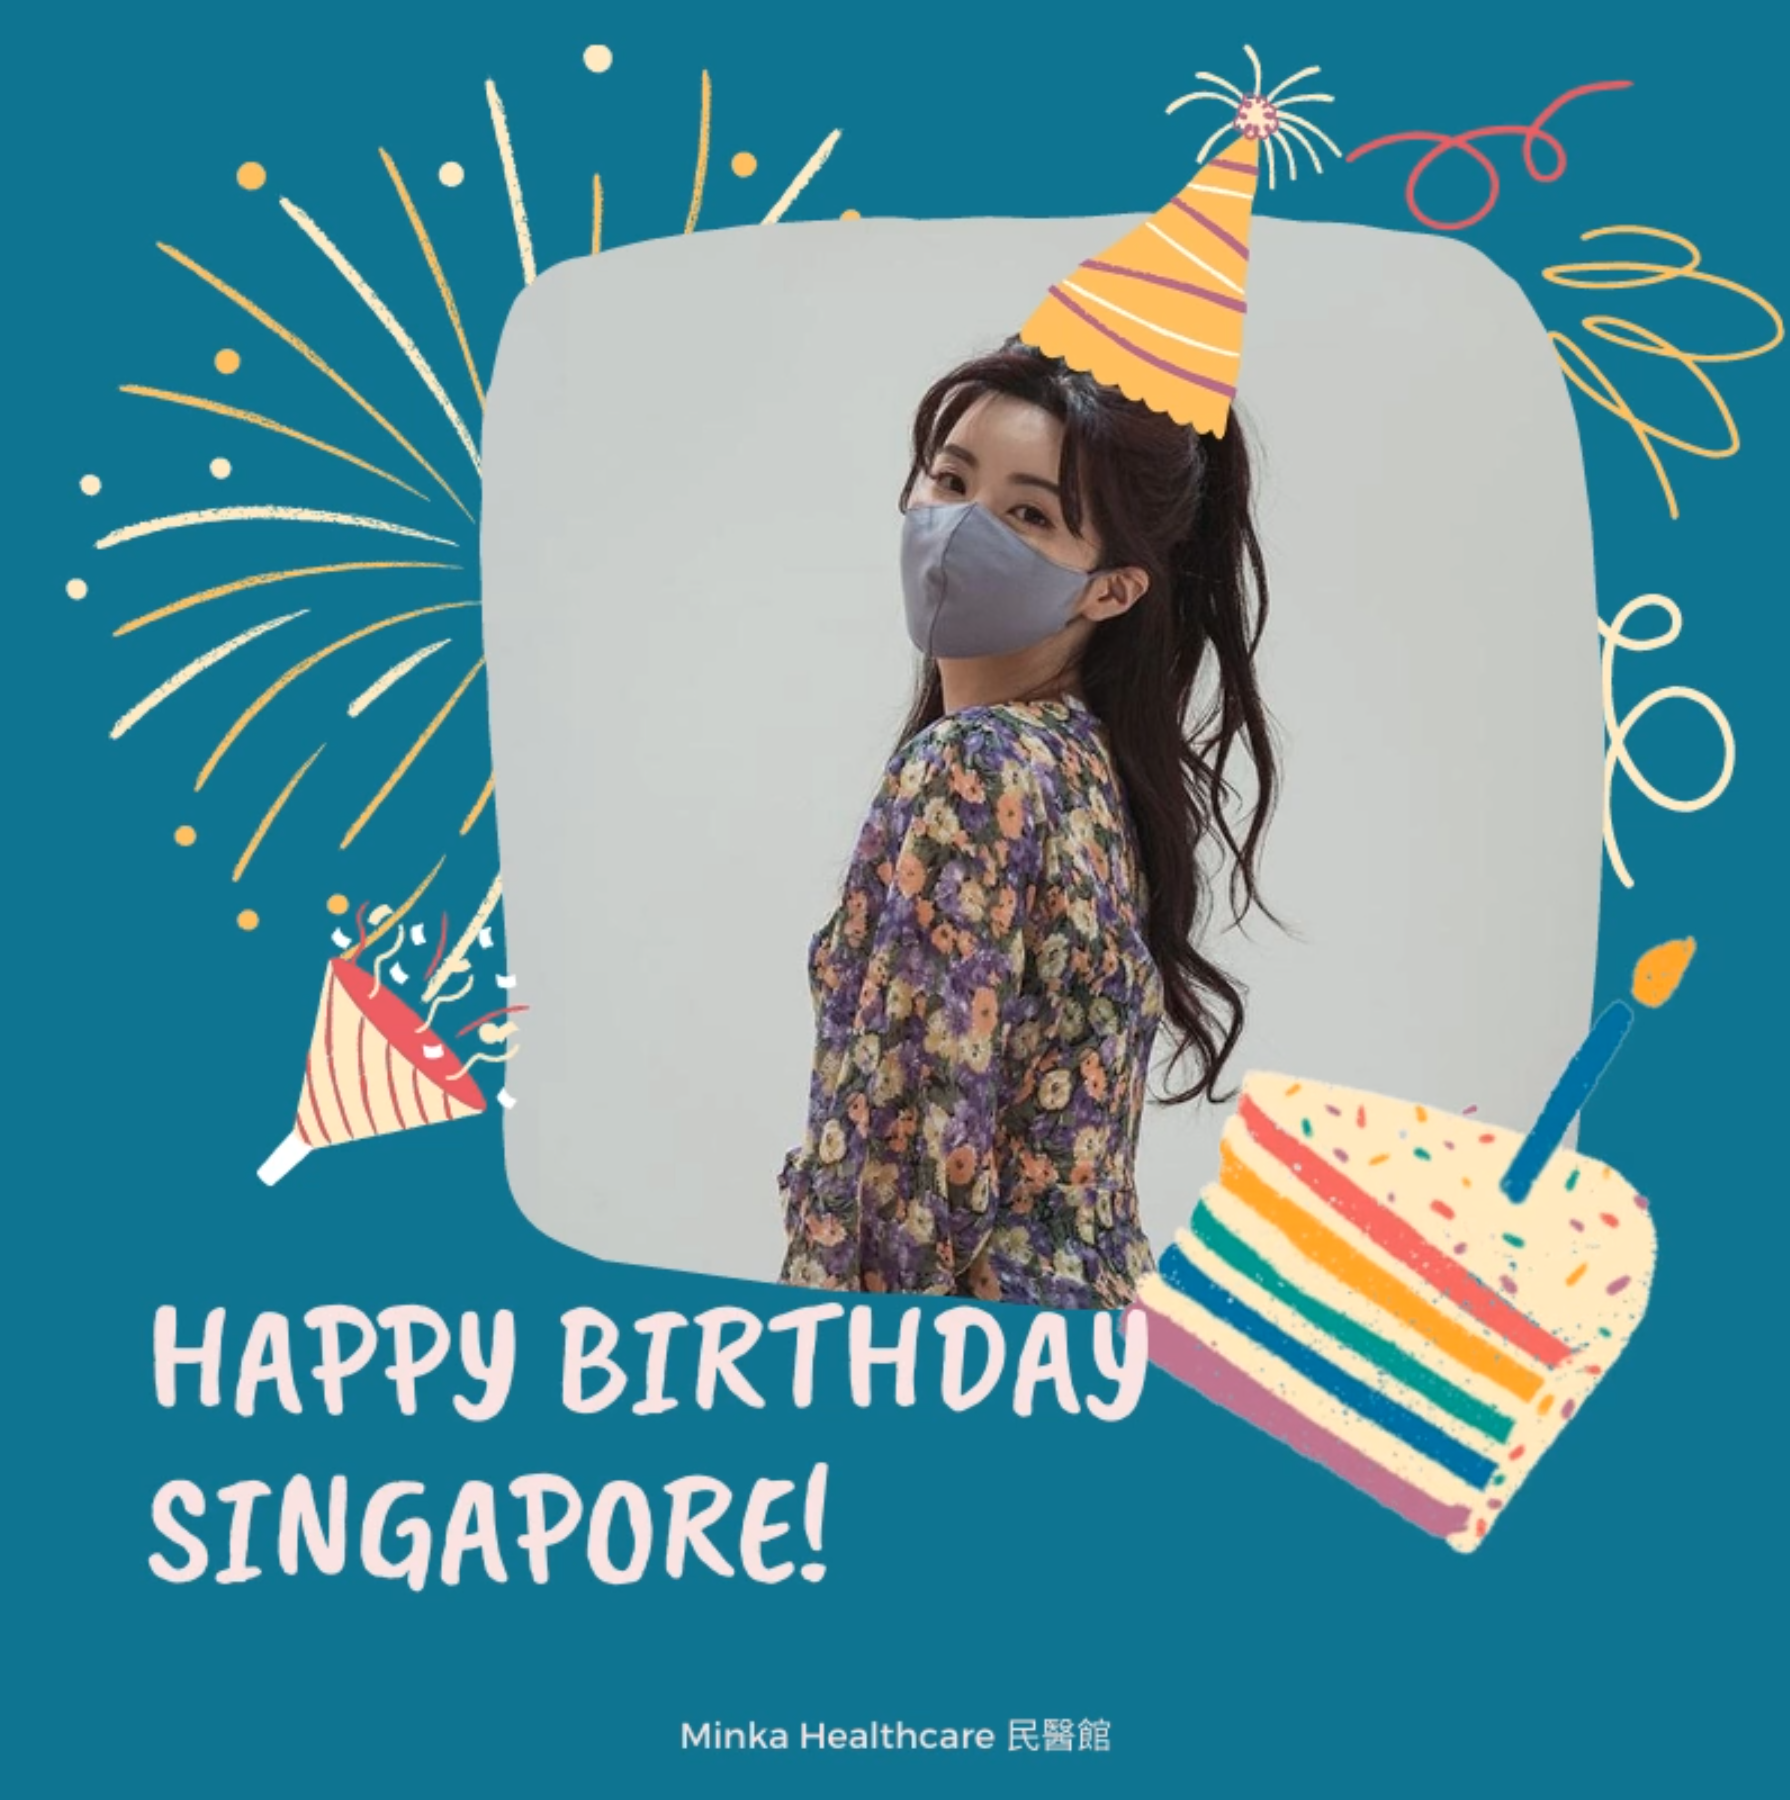 Happy 55th Birthday Singapore!